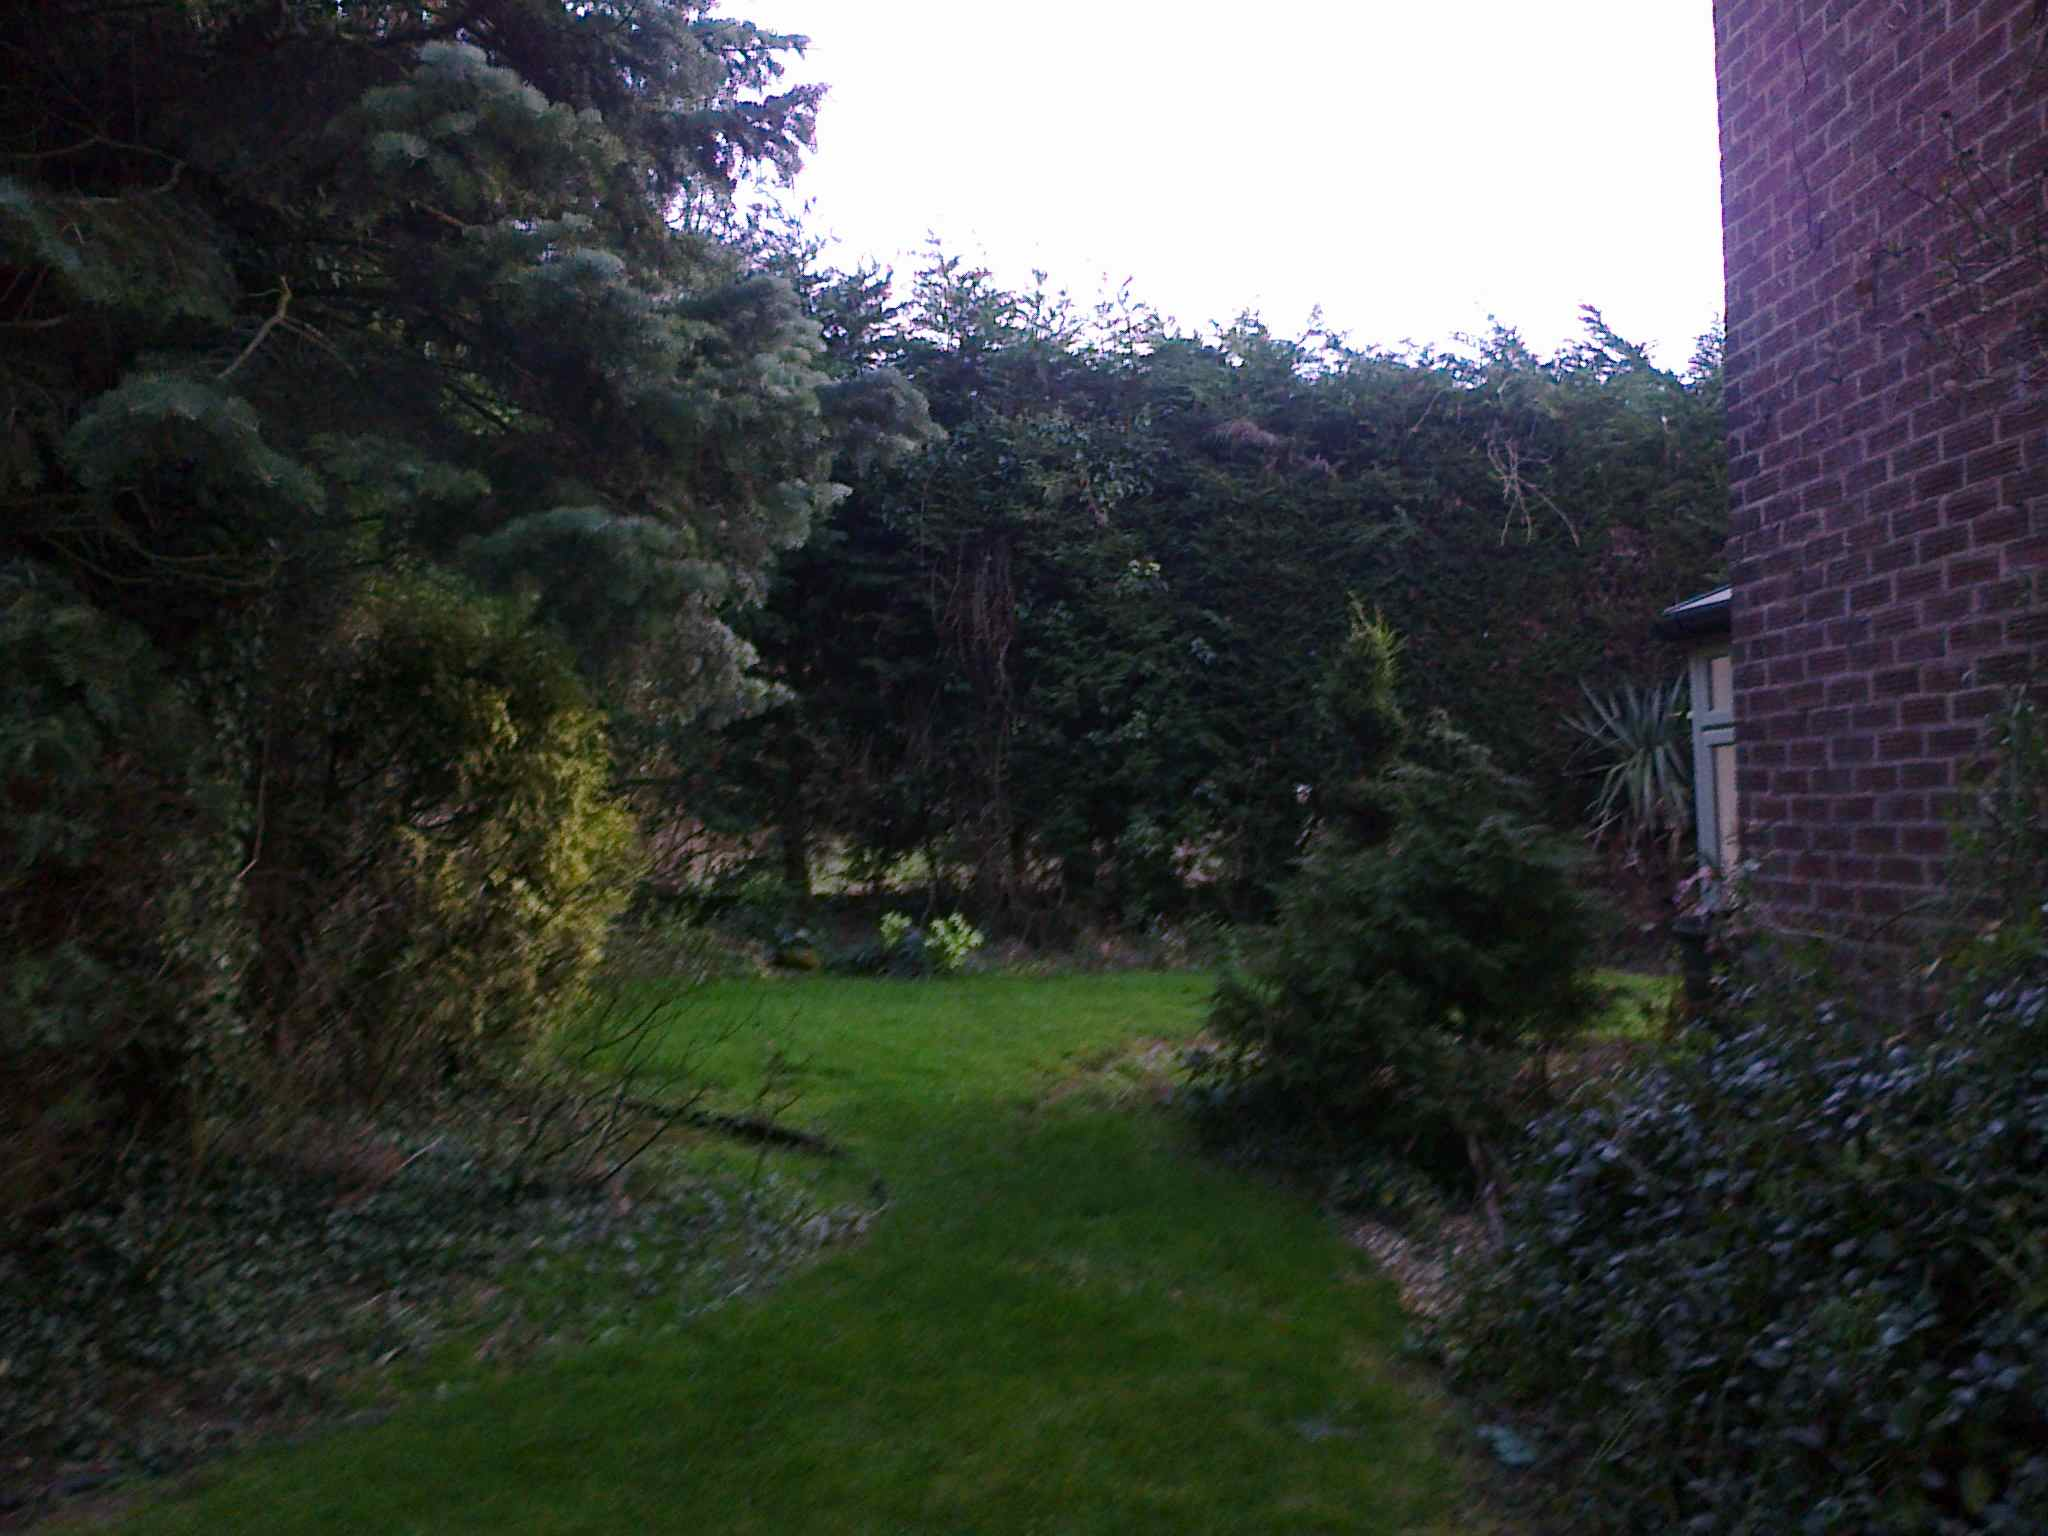 Backgarden_view to gazeboplot.jpg